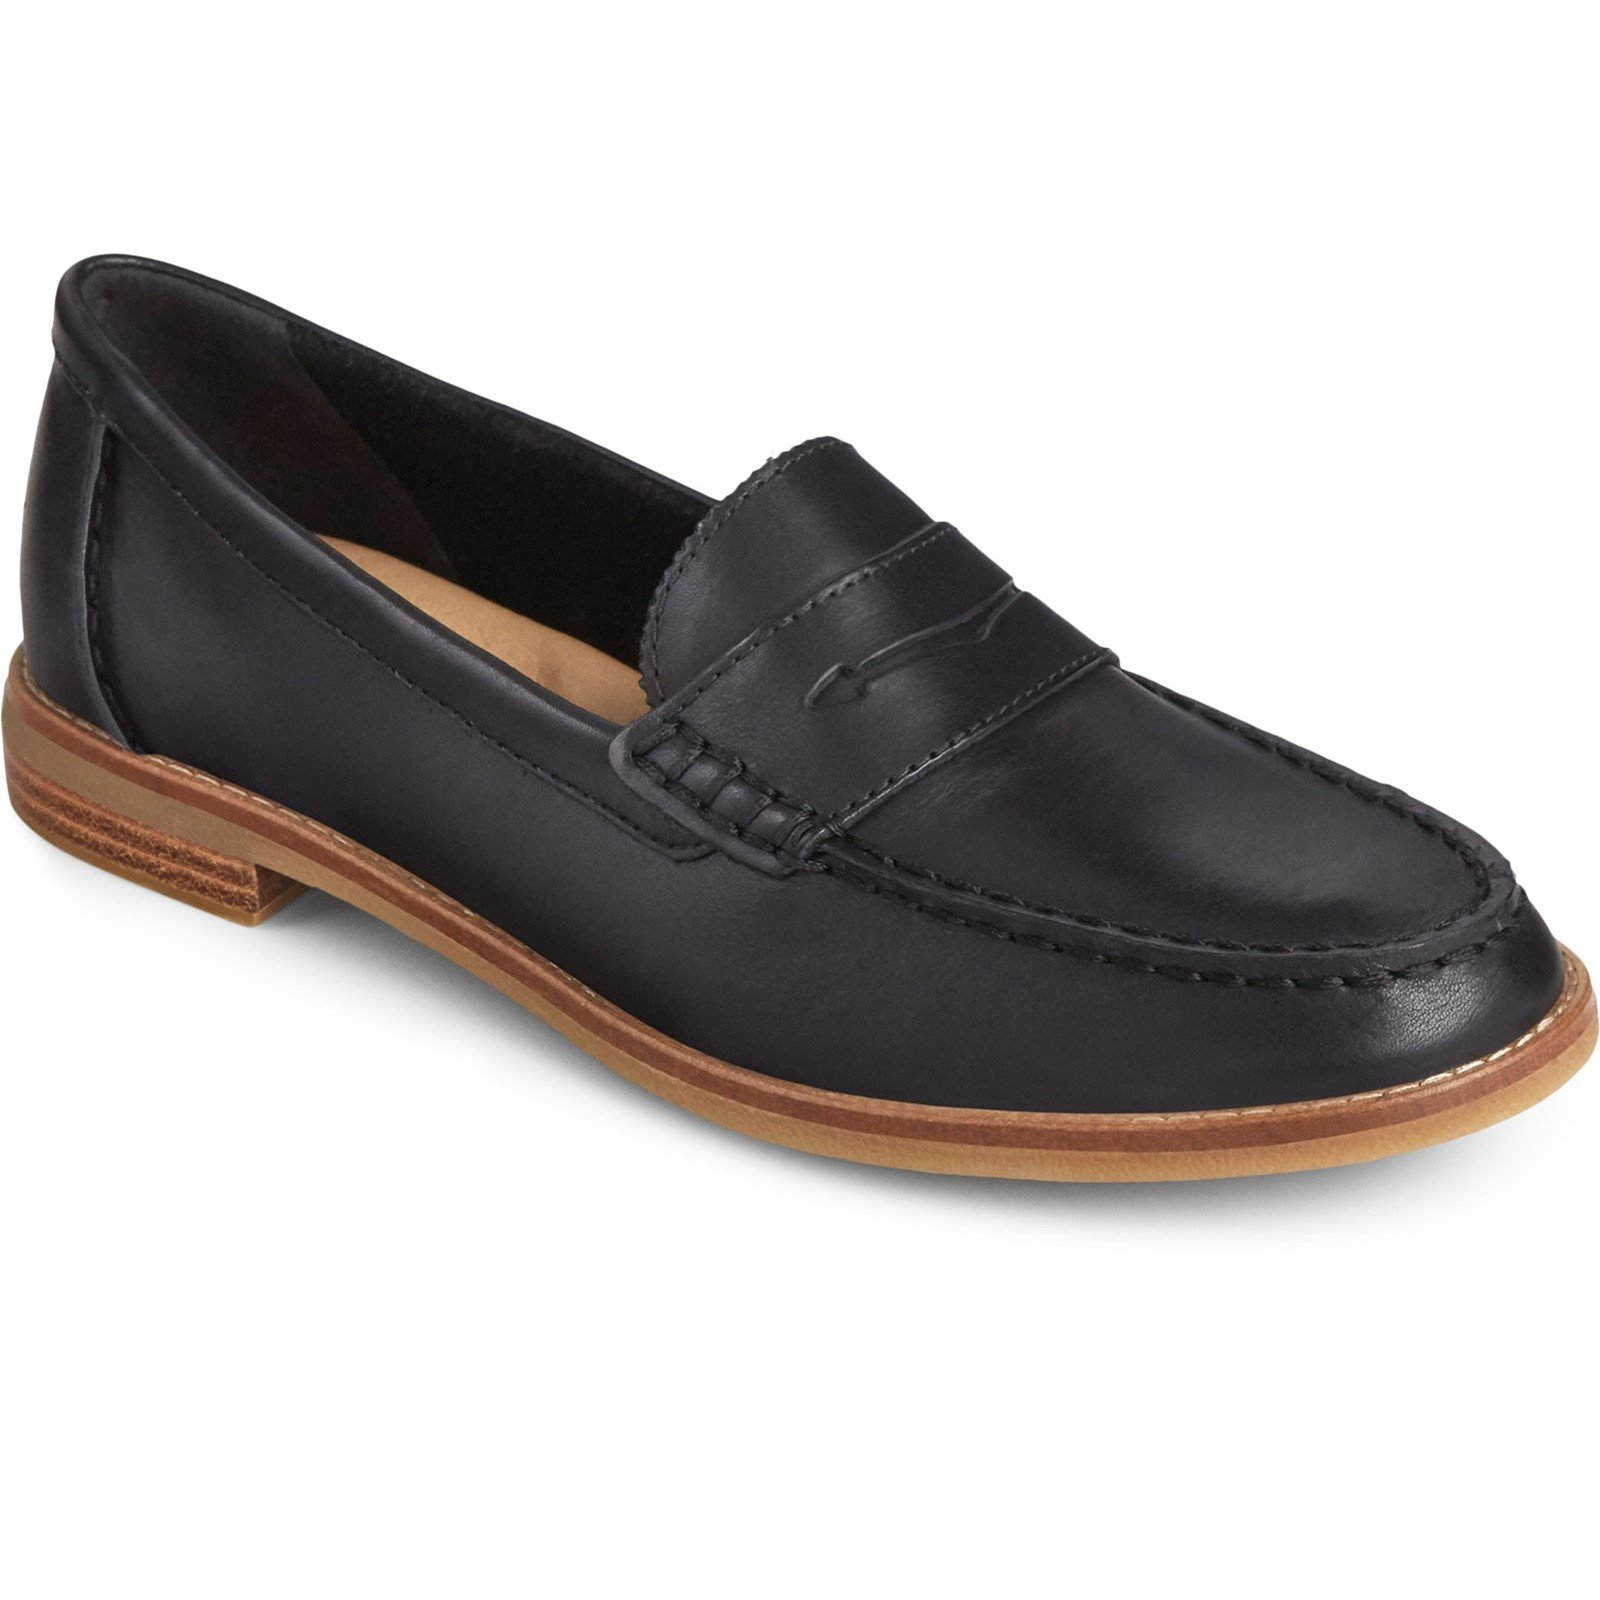 Sperry Women's Seaport Penny Loafer Various Colours 32403 - Black 7